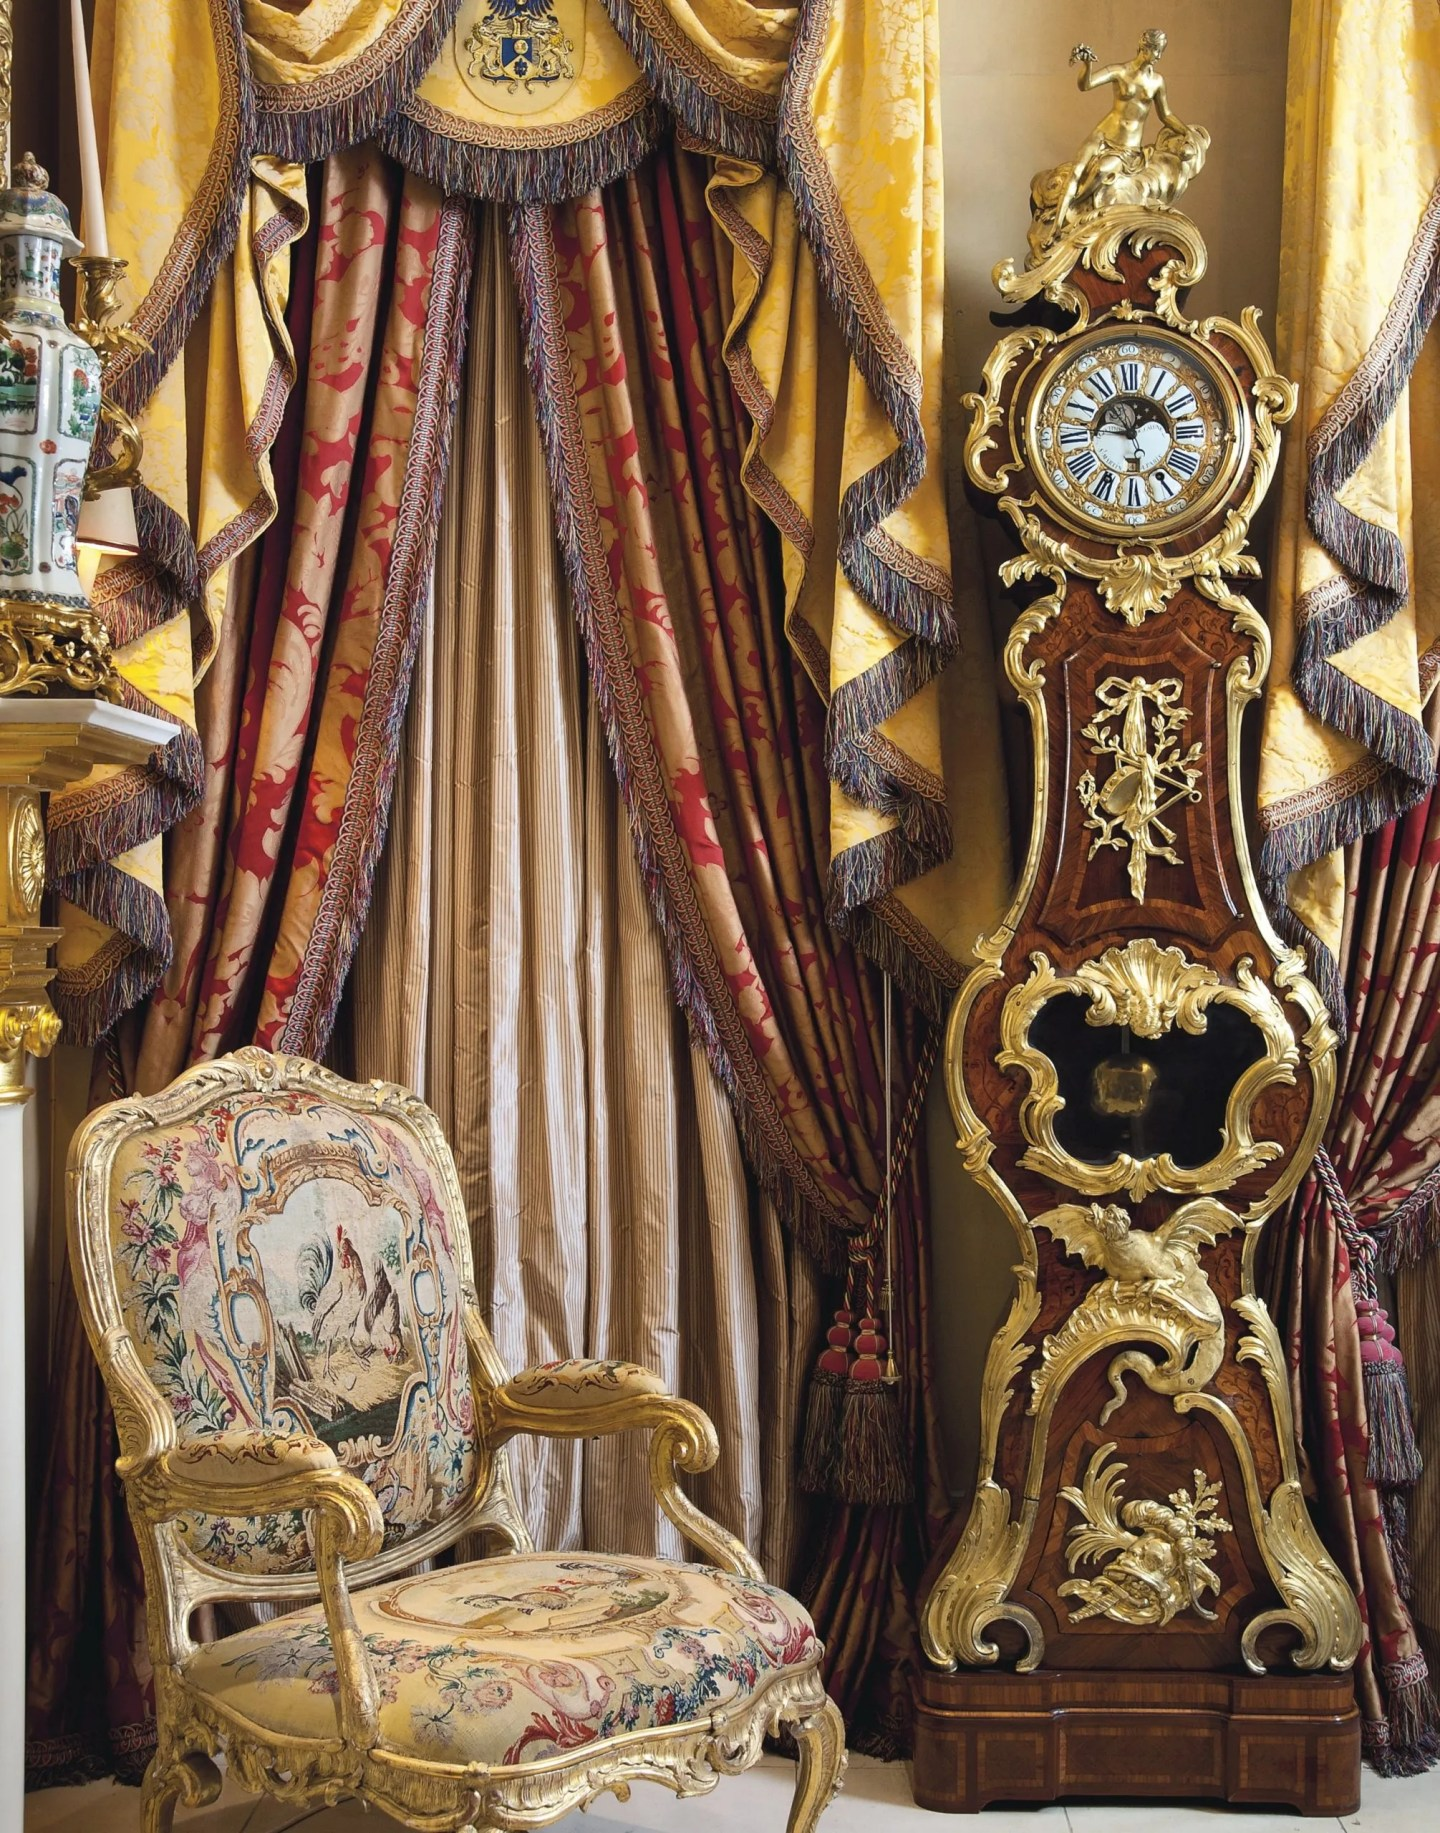 Hallway Dr Peter D Sommer ornate clock fabric swags